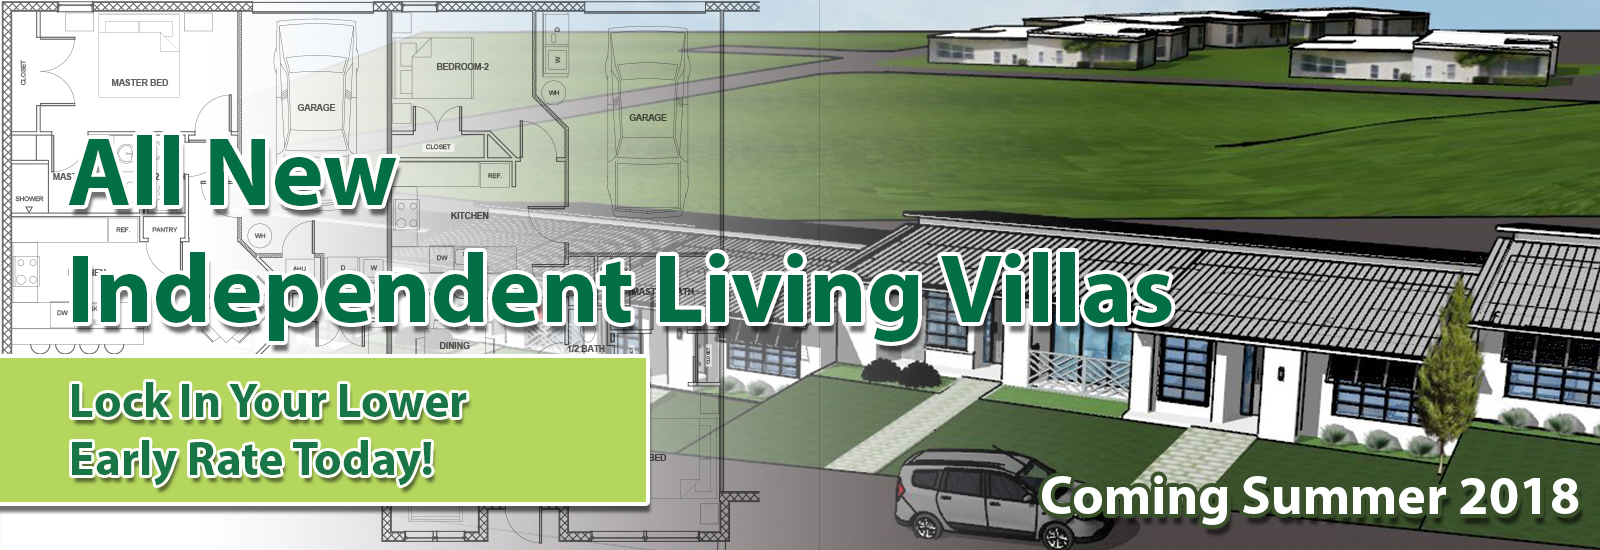 Independent Living Villas